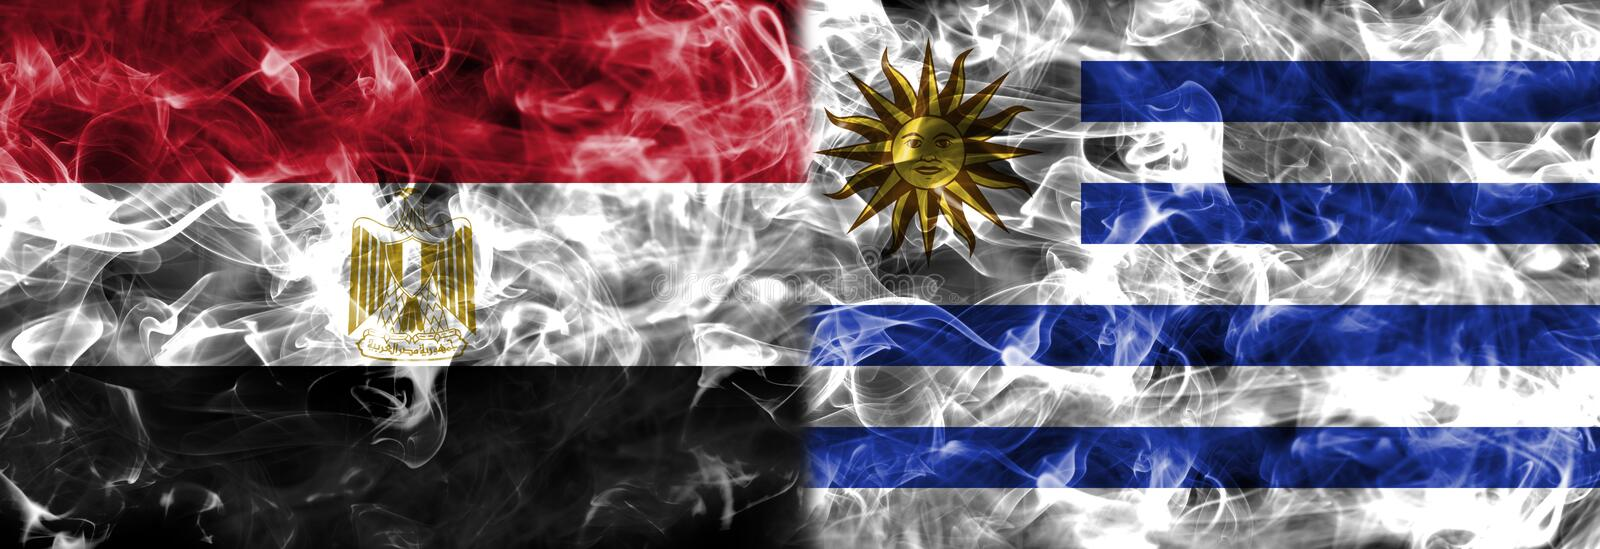 Egypt vs Uruguay smoke flag, group A, Fifa football world cup 2018, Moscow, Russia stock illustration